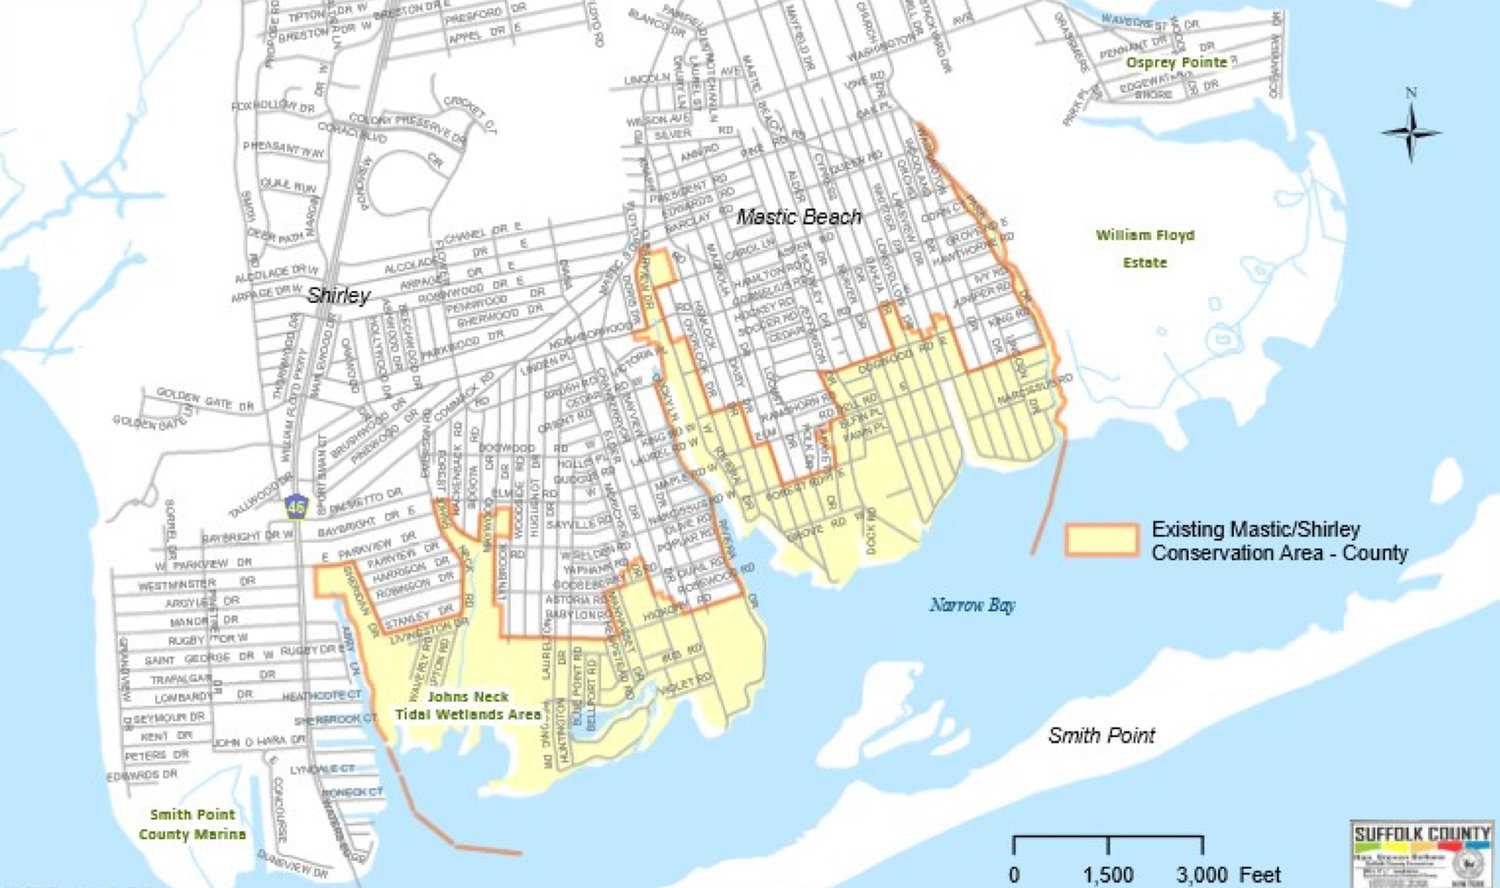 The current borders of the Mastic-Mastic Beach-Shirley Conservation Area. Surveys are available to residents that will help determine if and